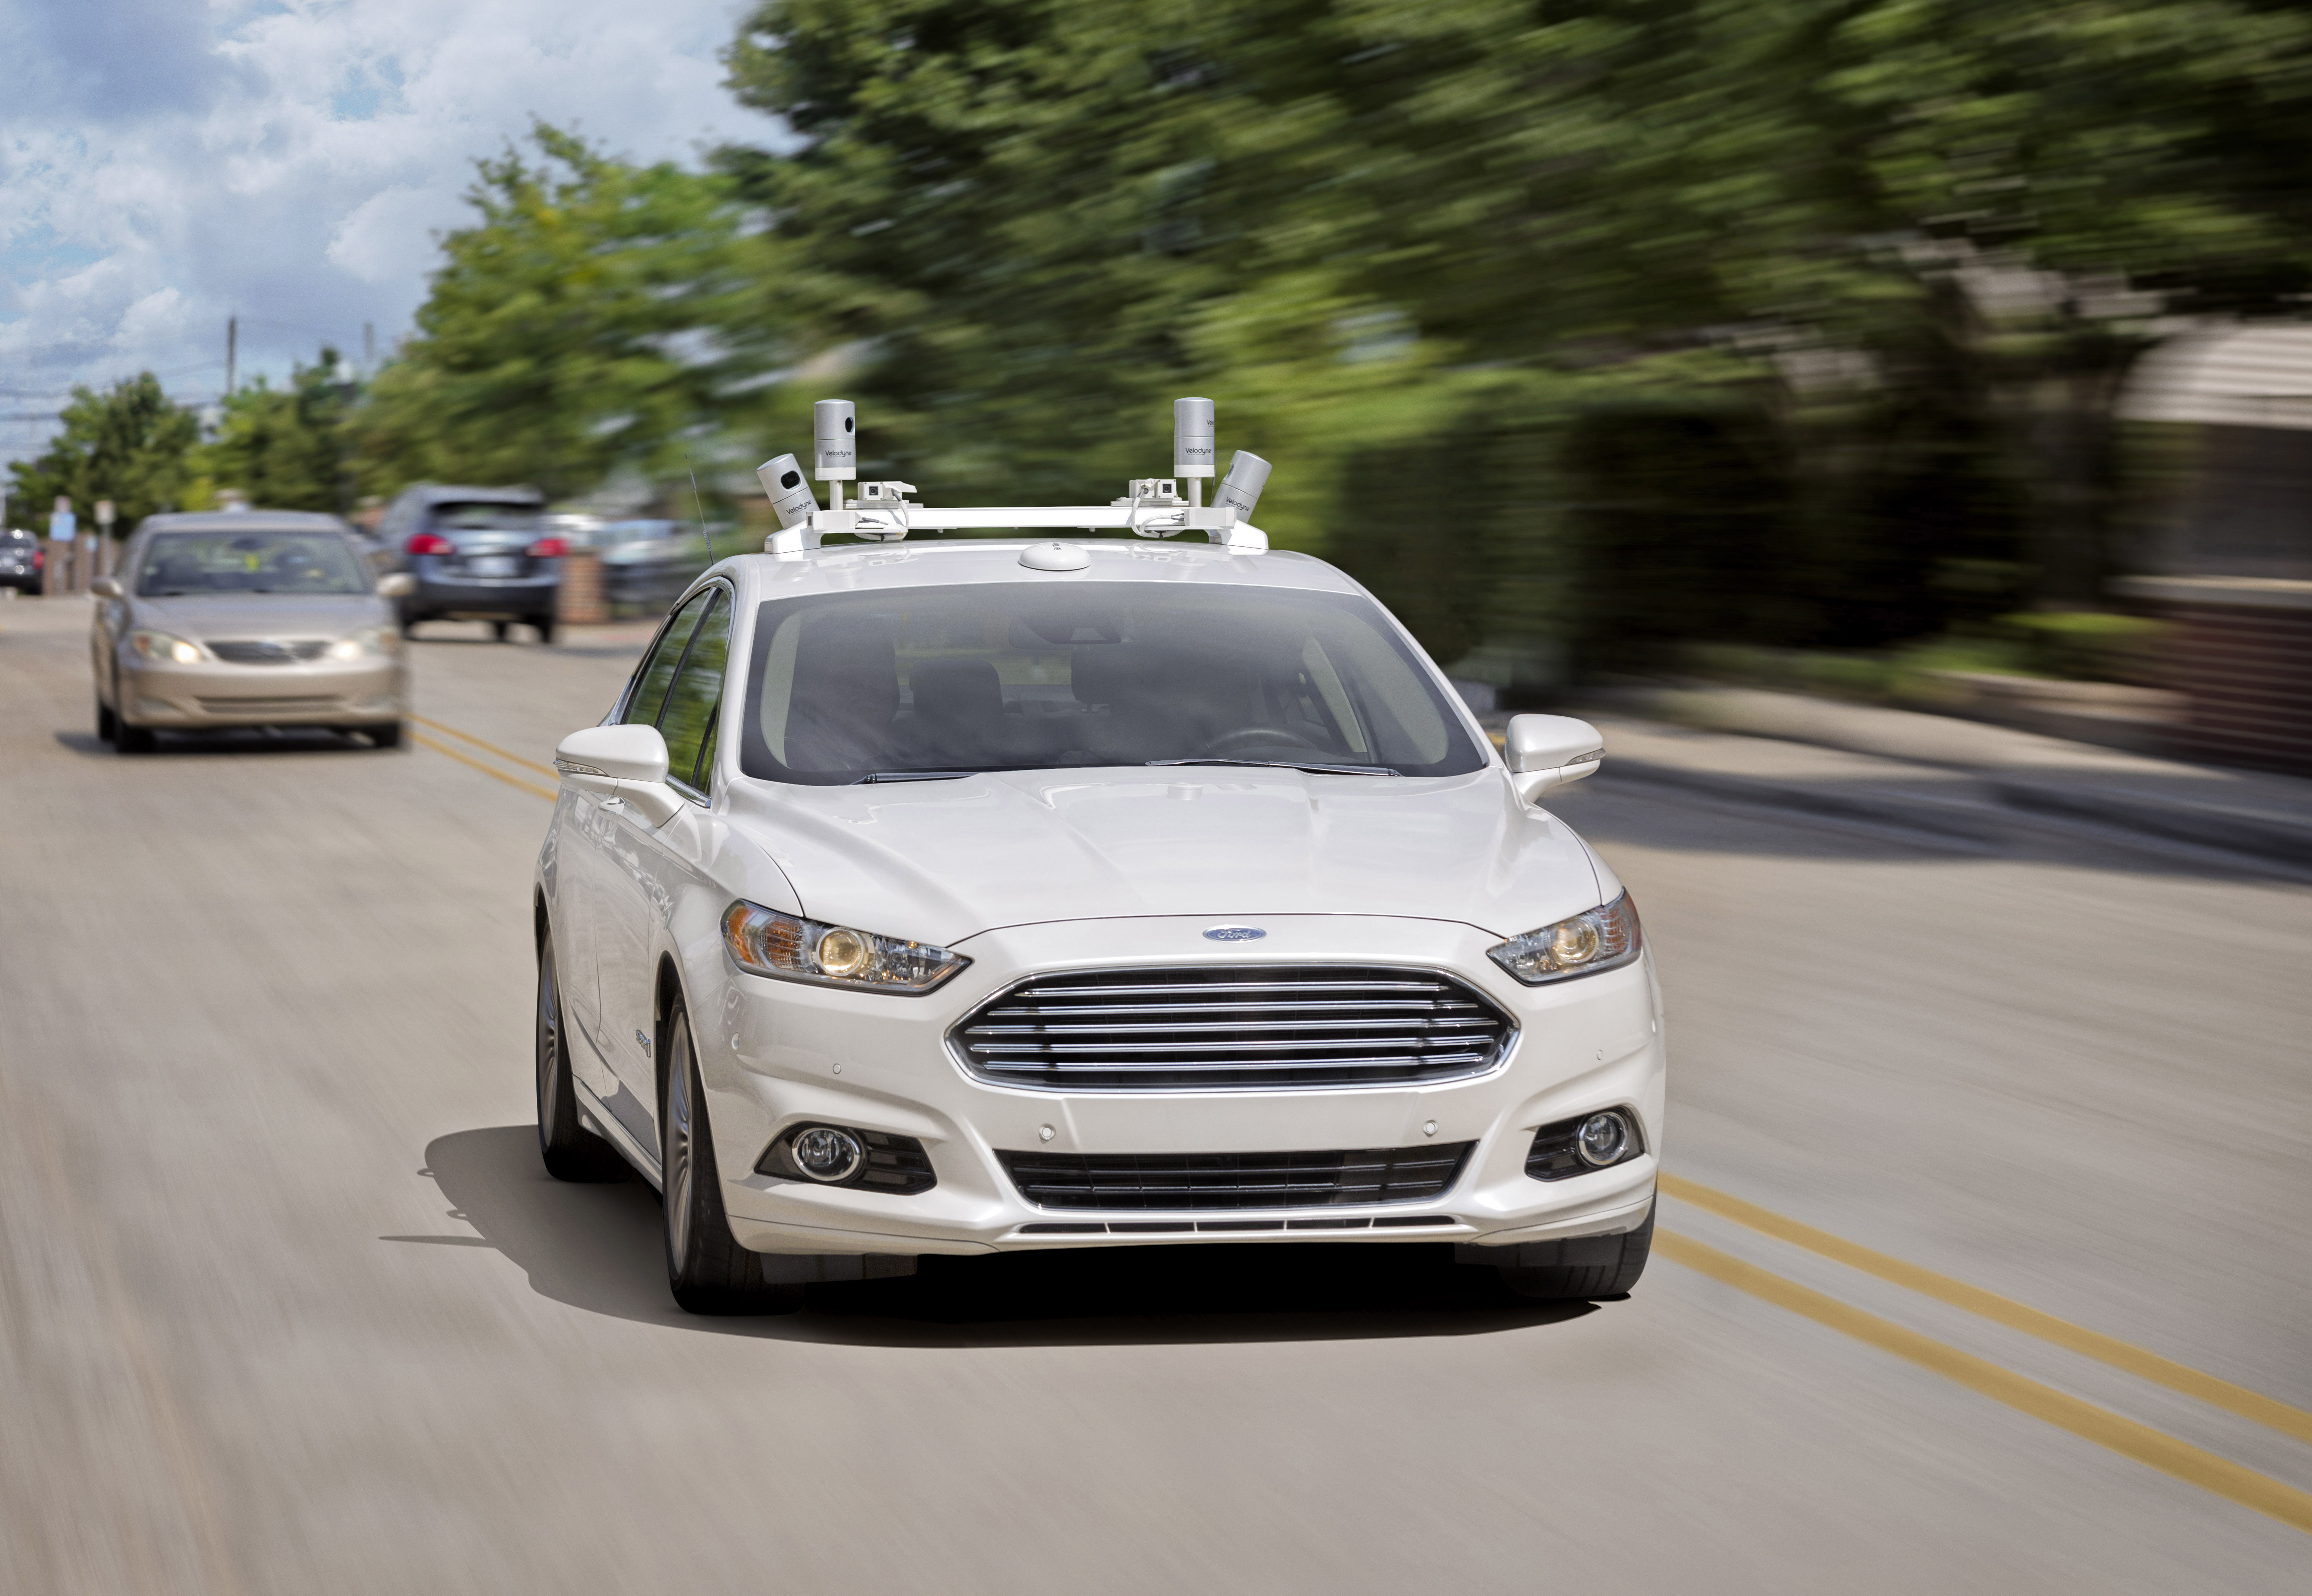 Video: Ford's Driverless Car to Arrive in 2021